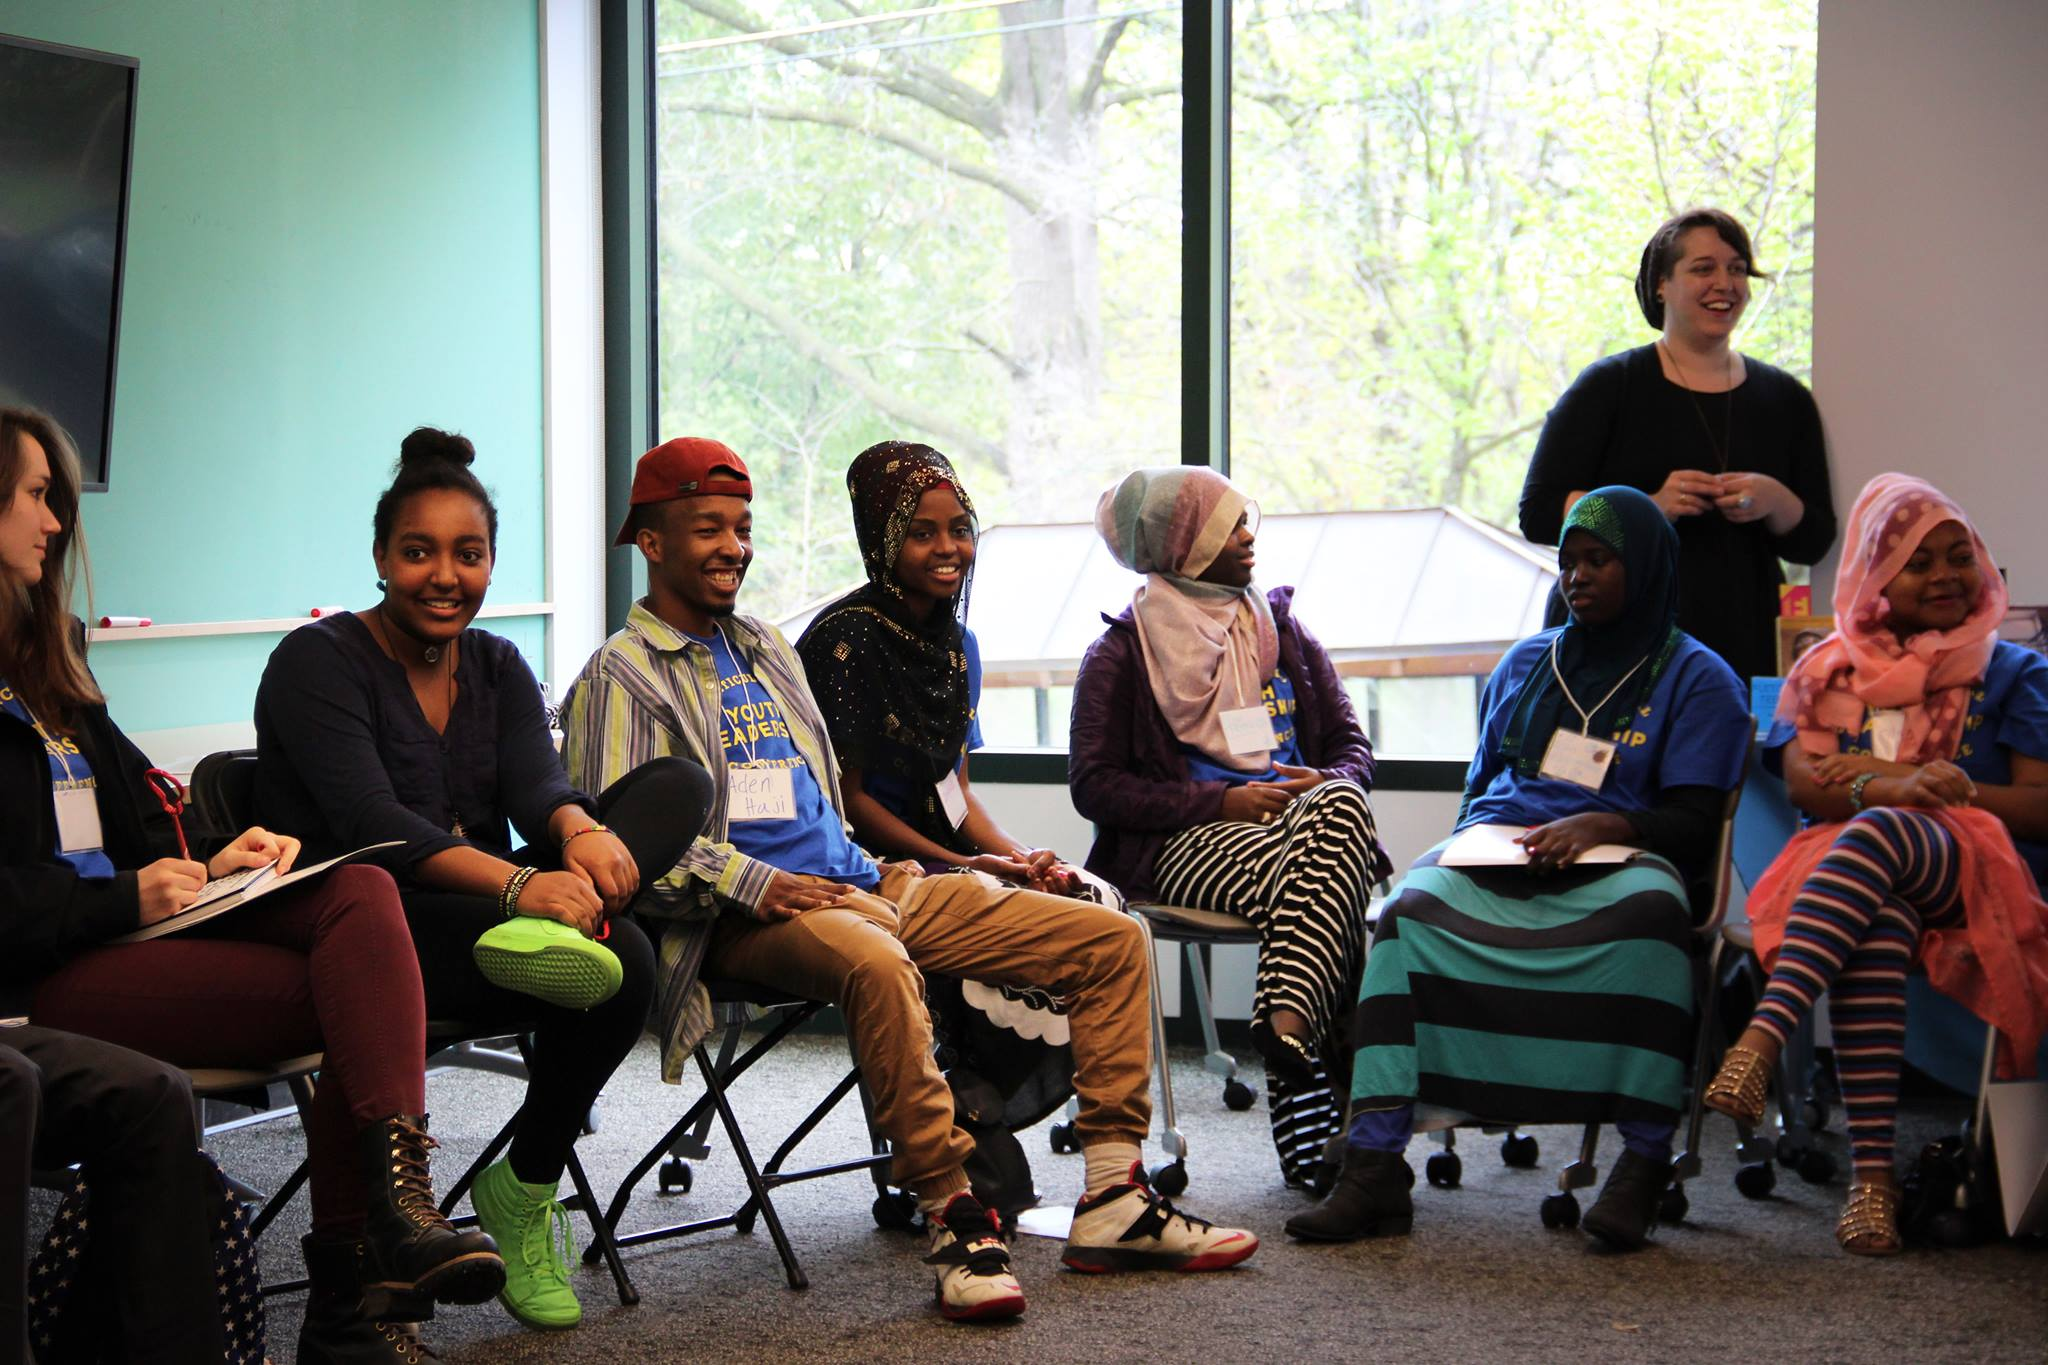 Spectrum's Multicultural Youth Conference